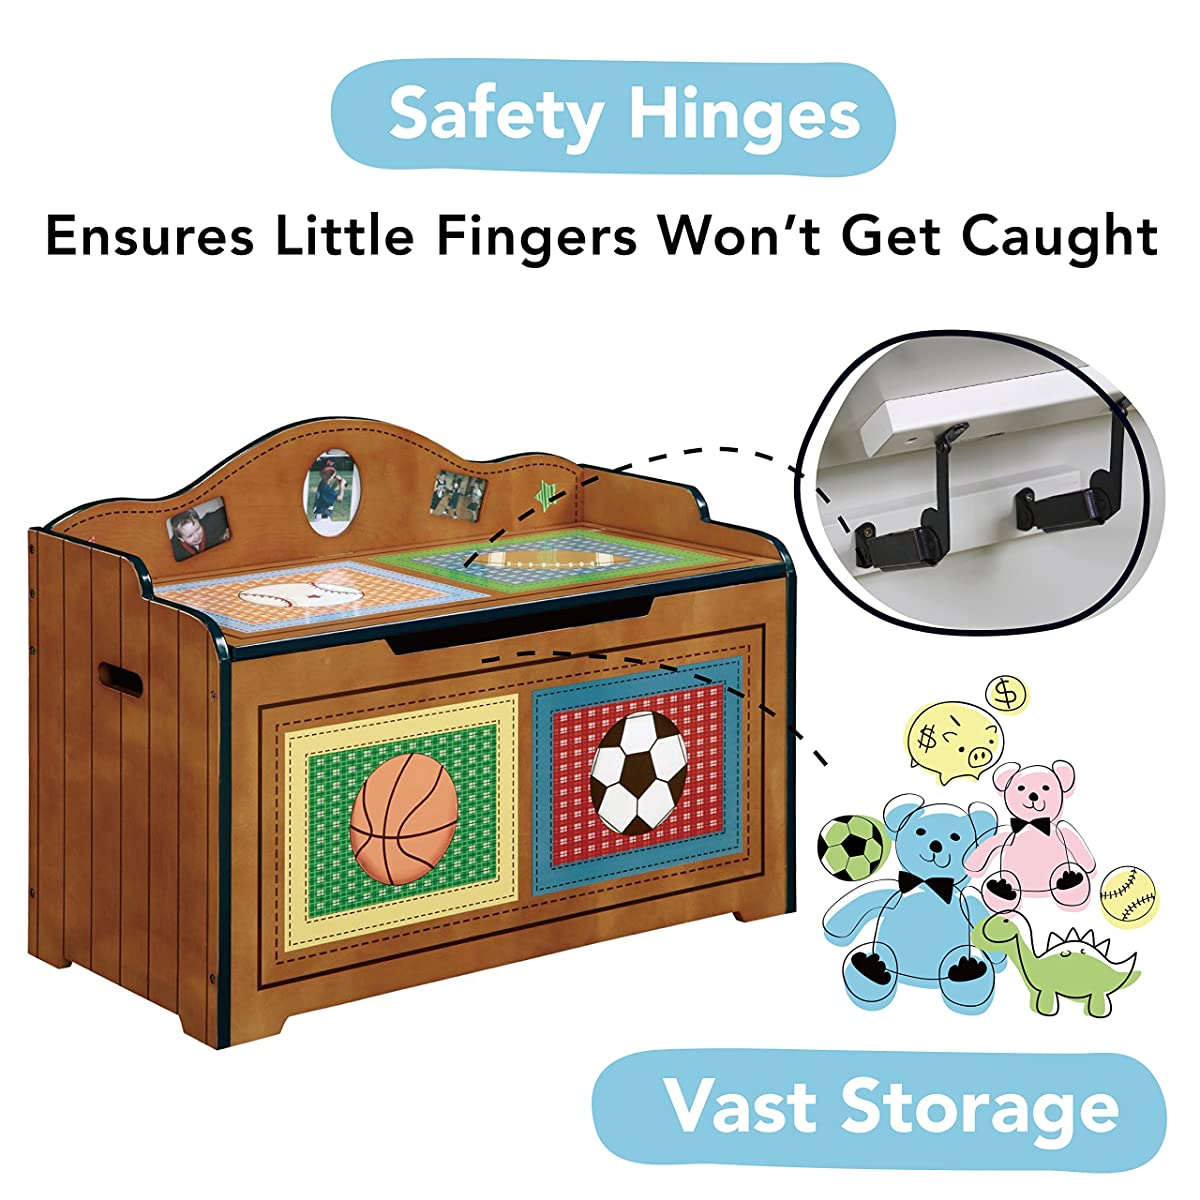 Wooden Toy Chest with Safety Hinges Imagination Inspiring Hand Crafted